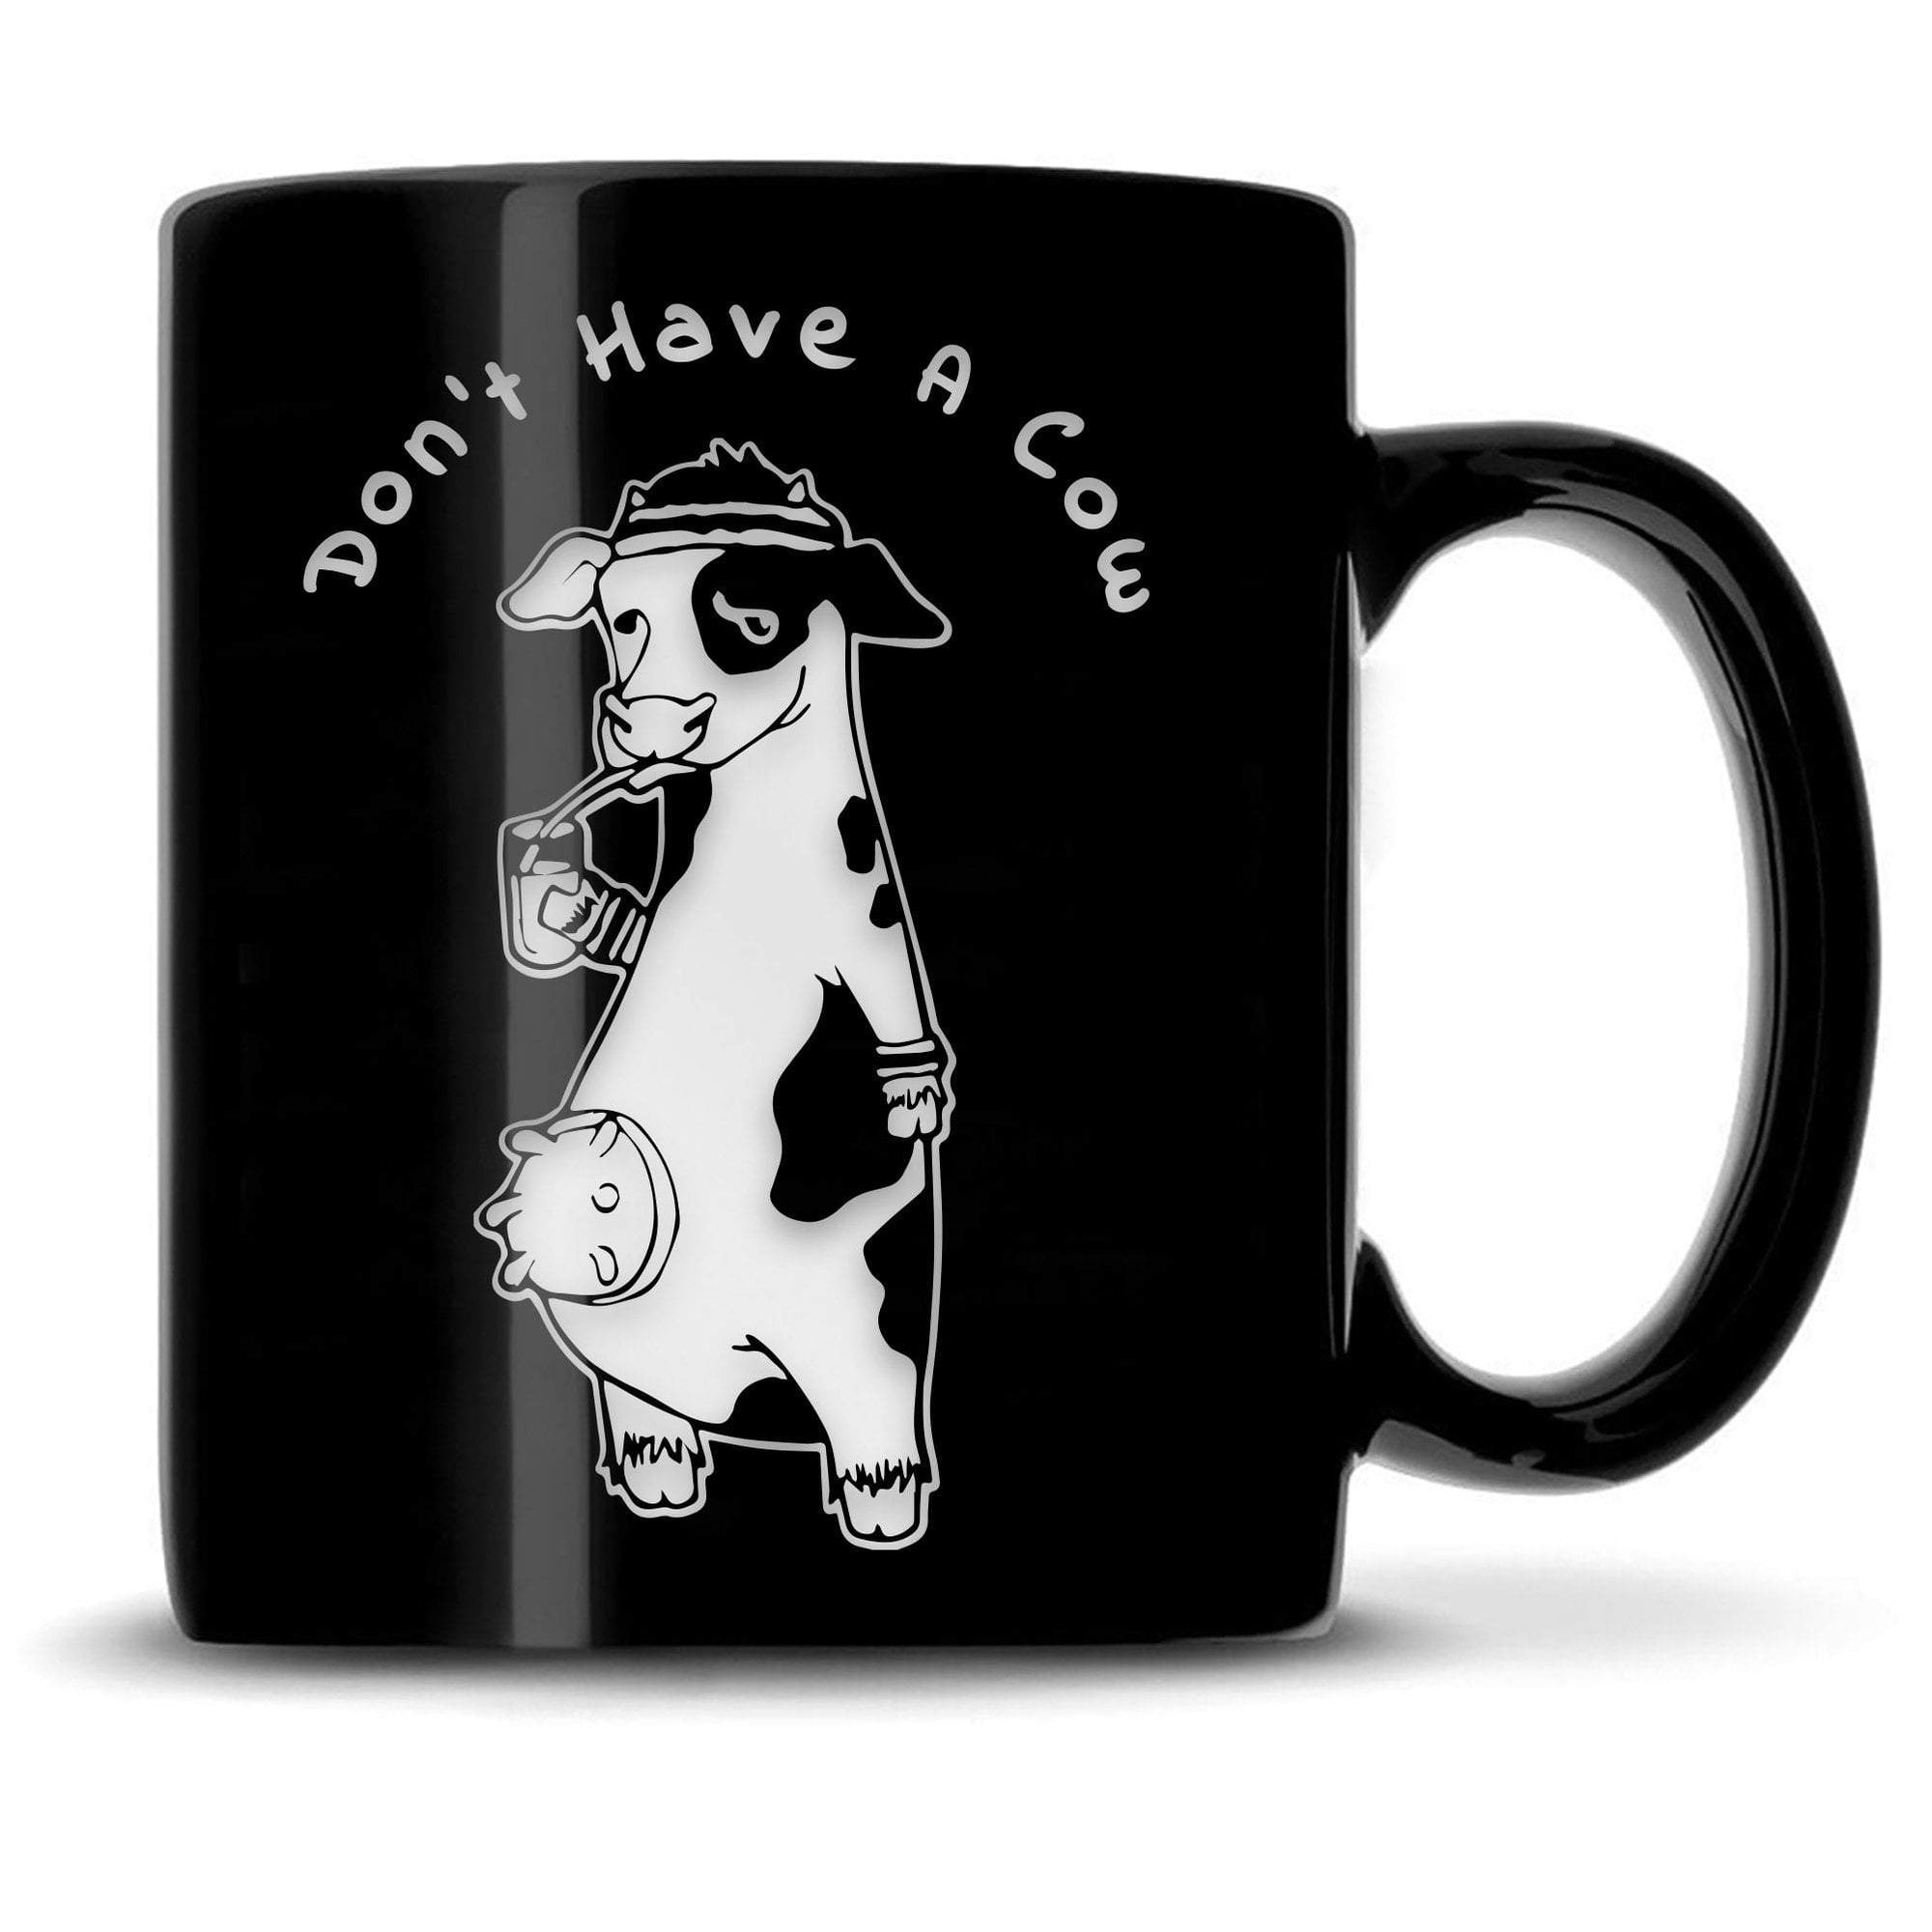 Don't Have A Cow, 12 oz Coffee Mug, Designs By Jess by Integrity Bottles